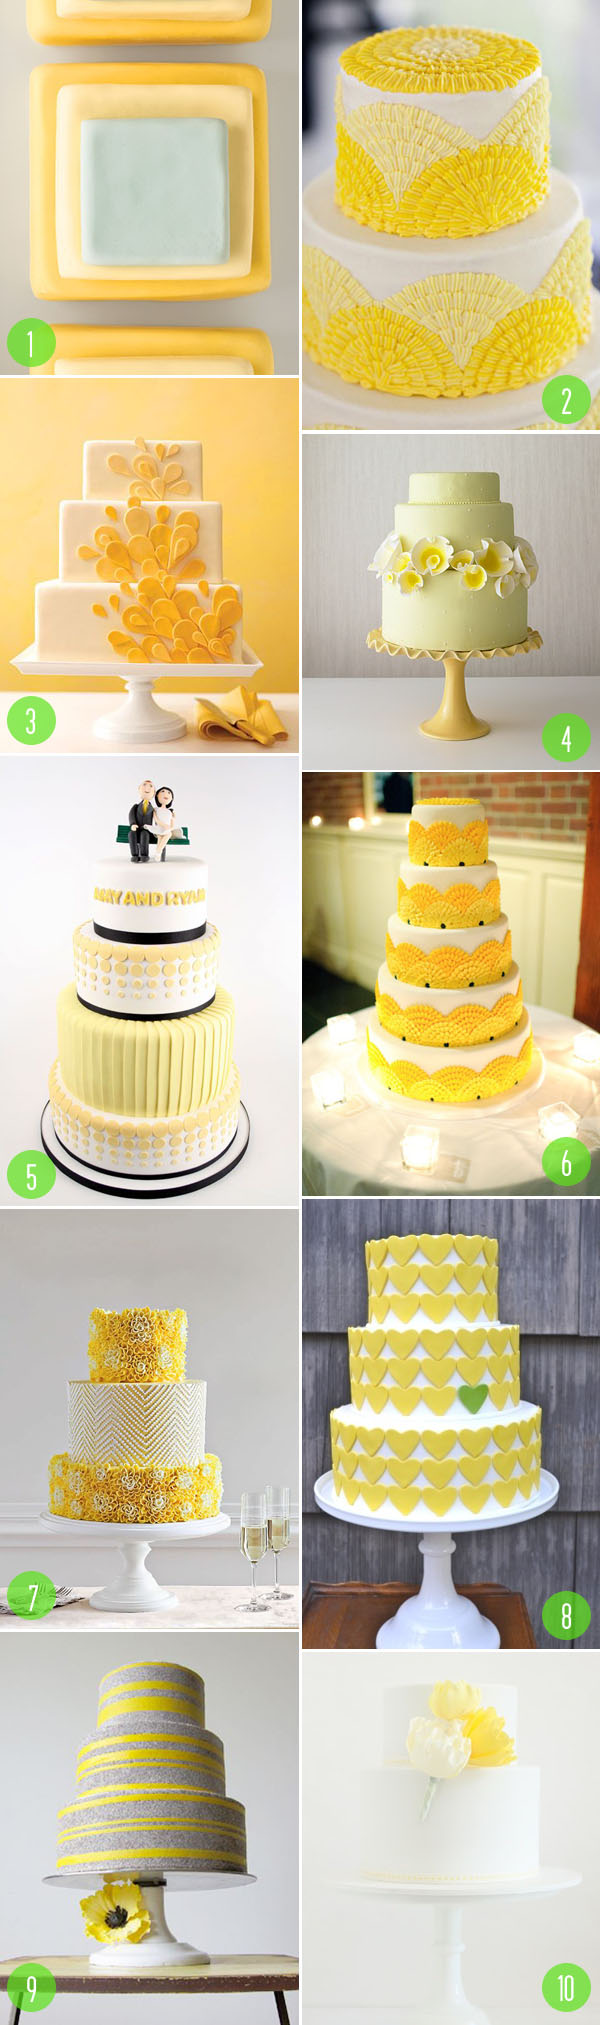 top 10: yellow wedding cakes